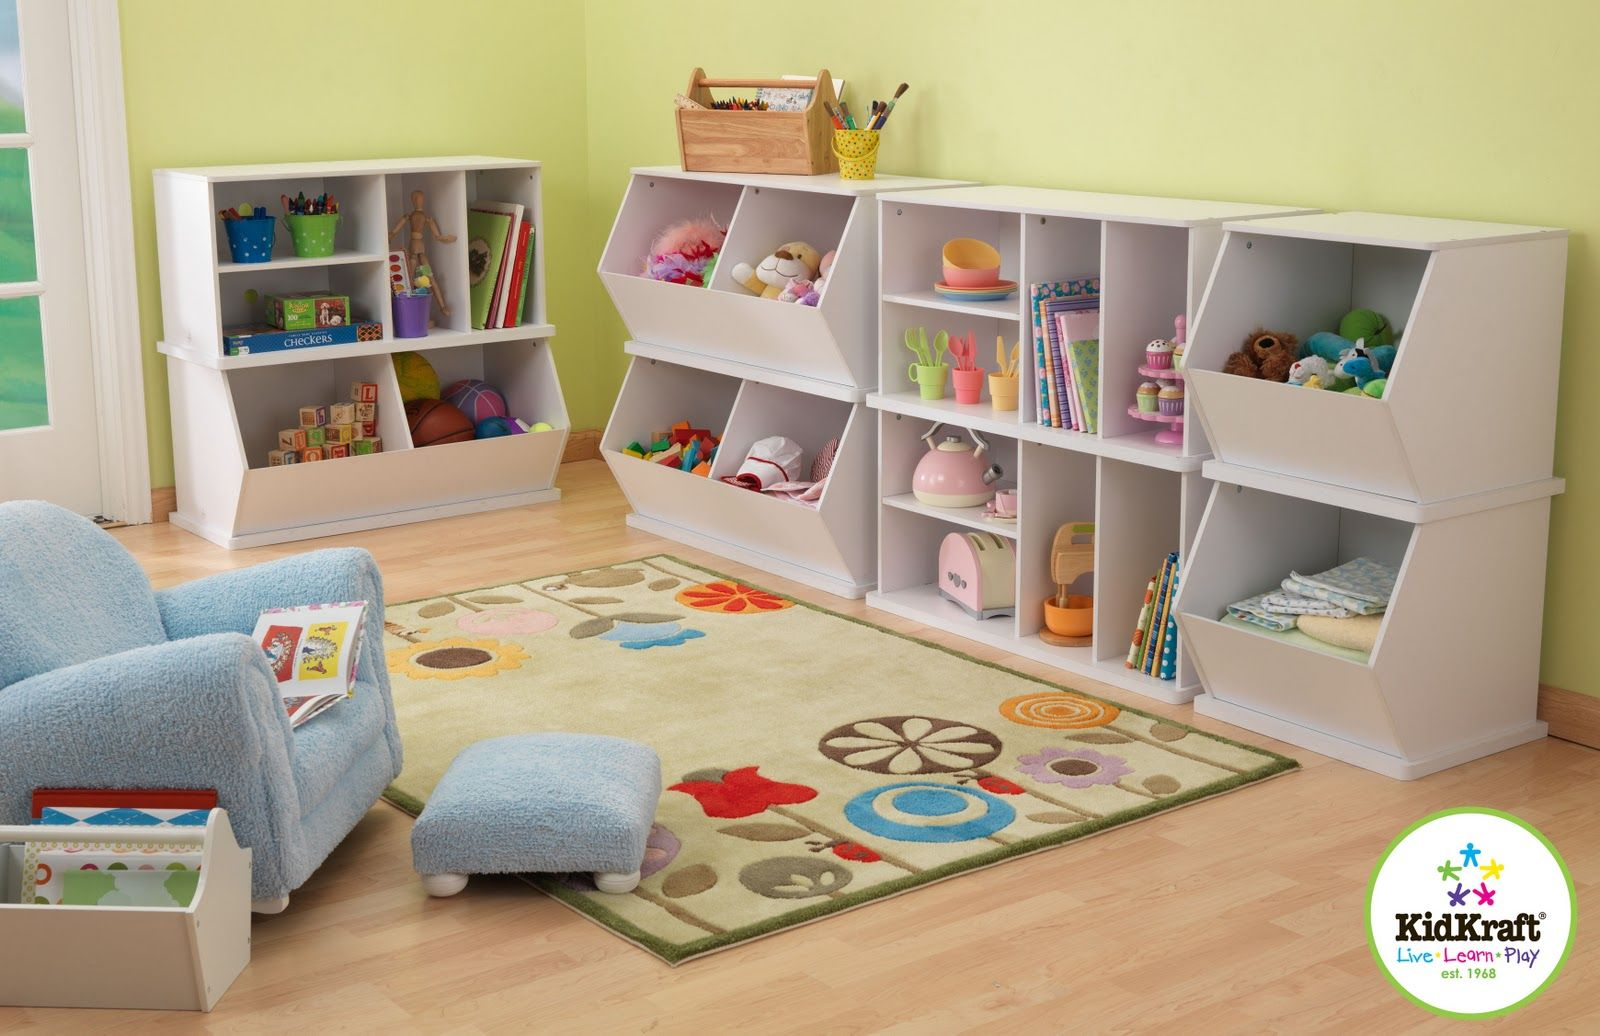 Kidkraft Wall White Storage Unit